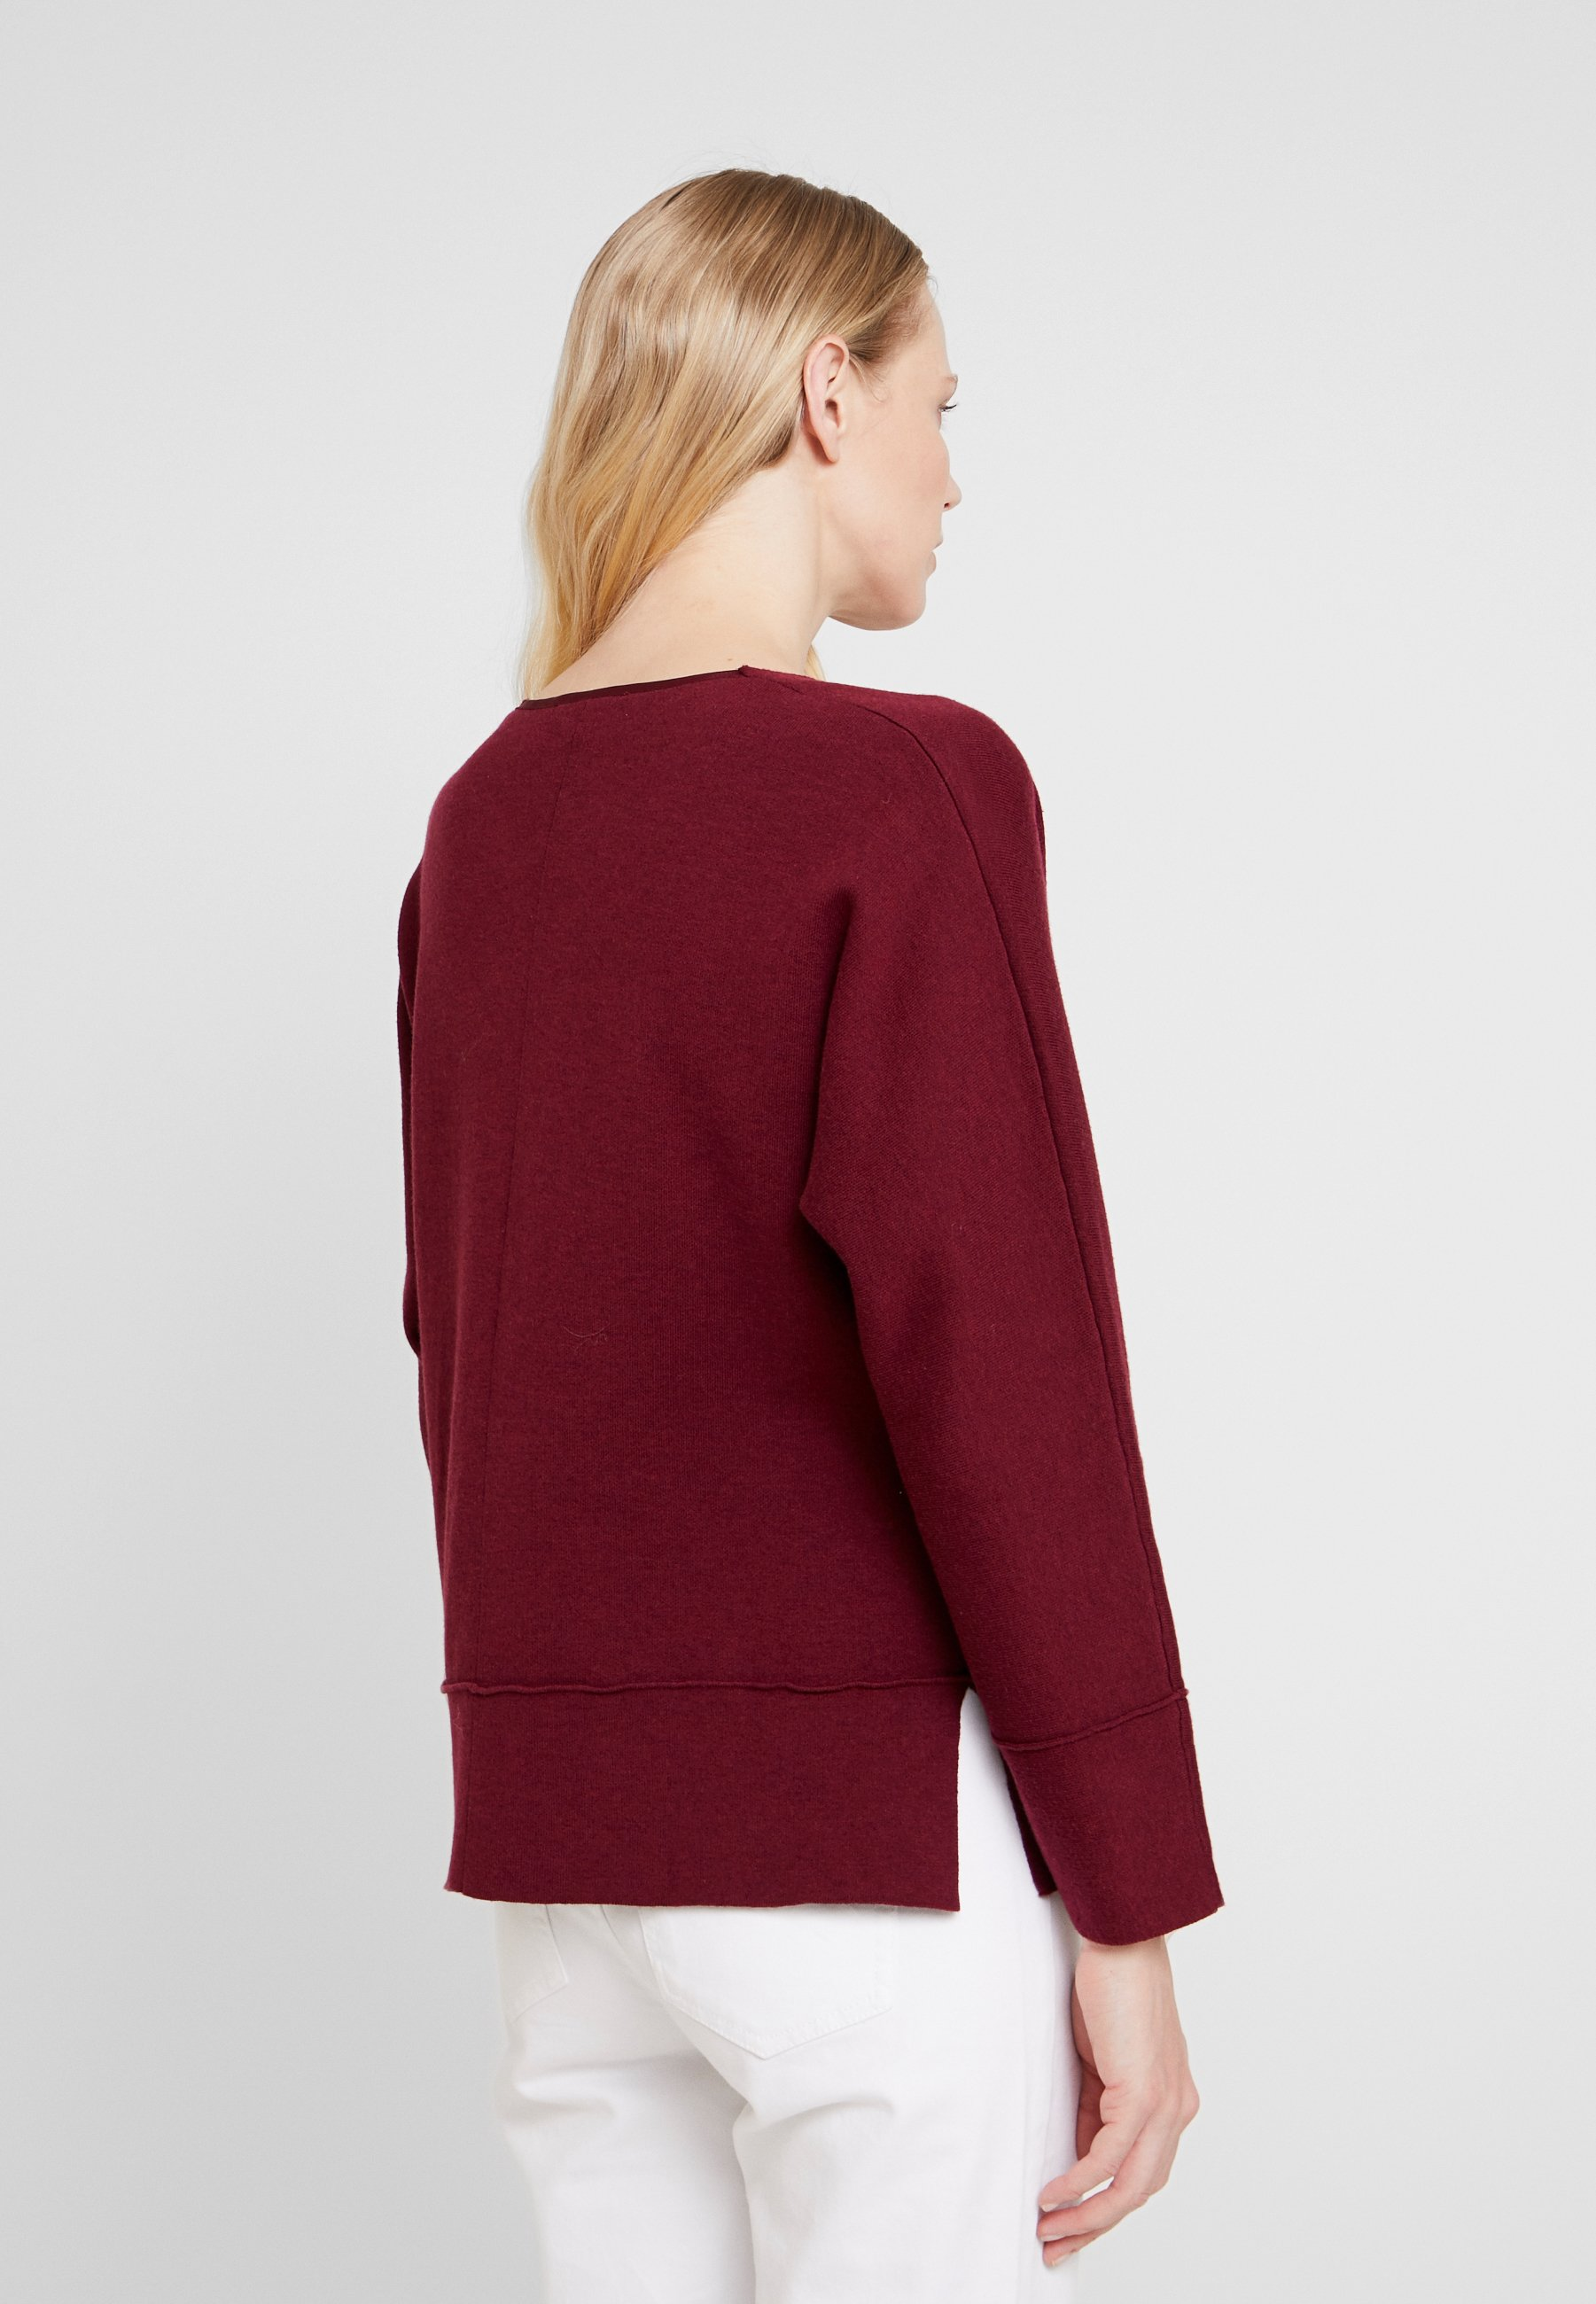 Esprit Esprit Red Collection Red SweatshirtGarnet SweatshirtGarnet Collection Red Esprit SweatshirtGarnet Esprit Collection OikuTwZPX